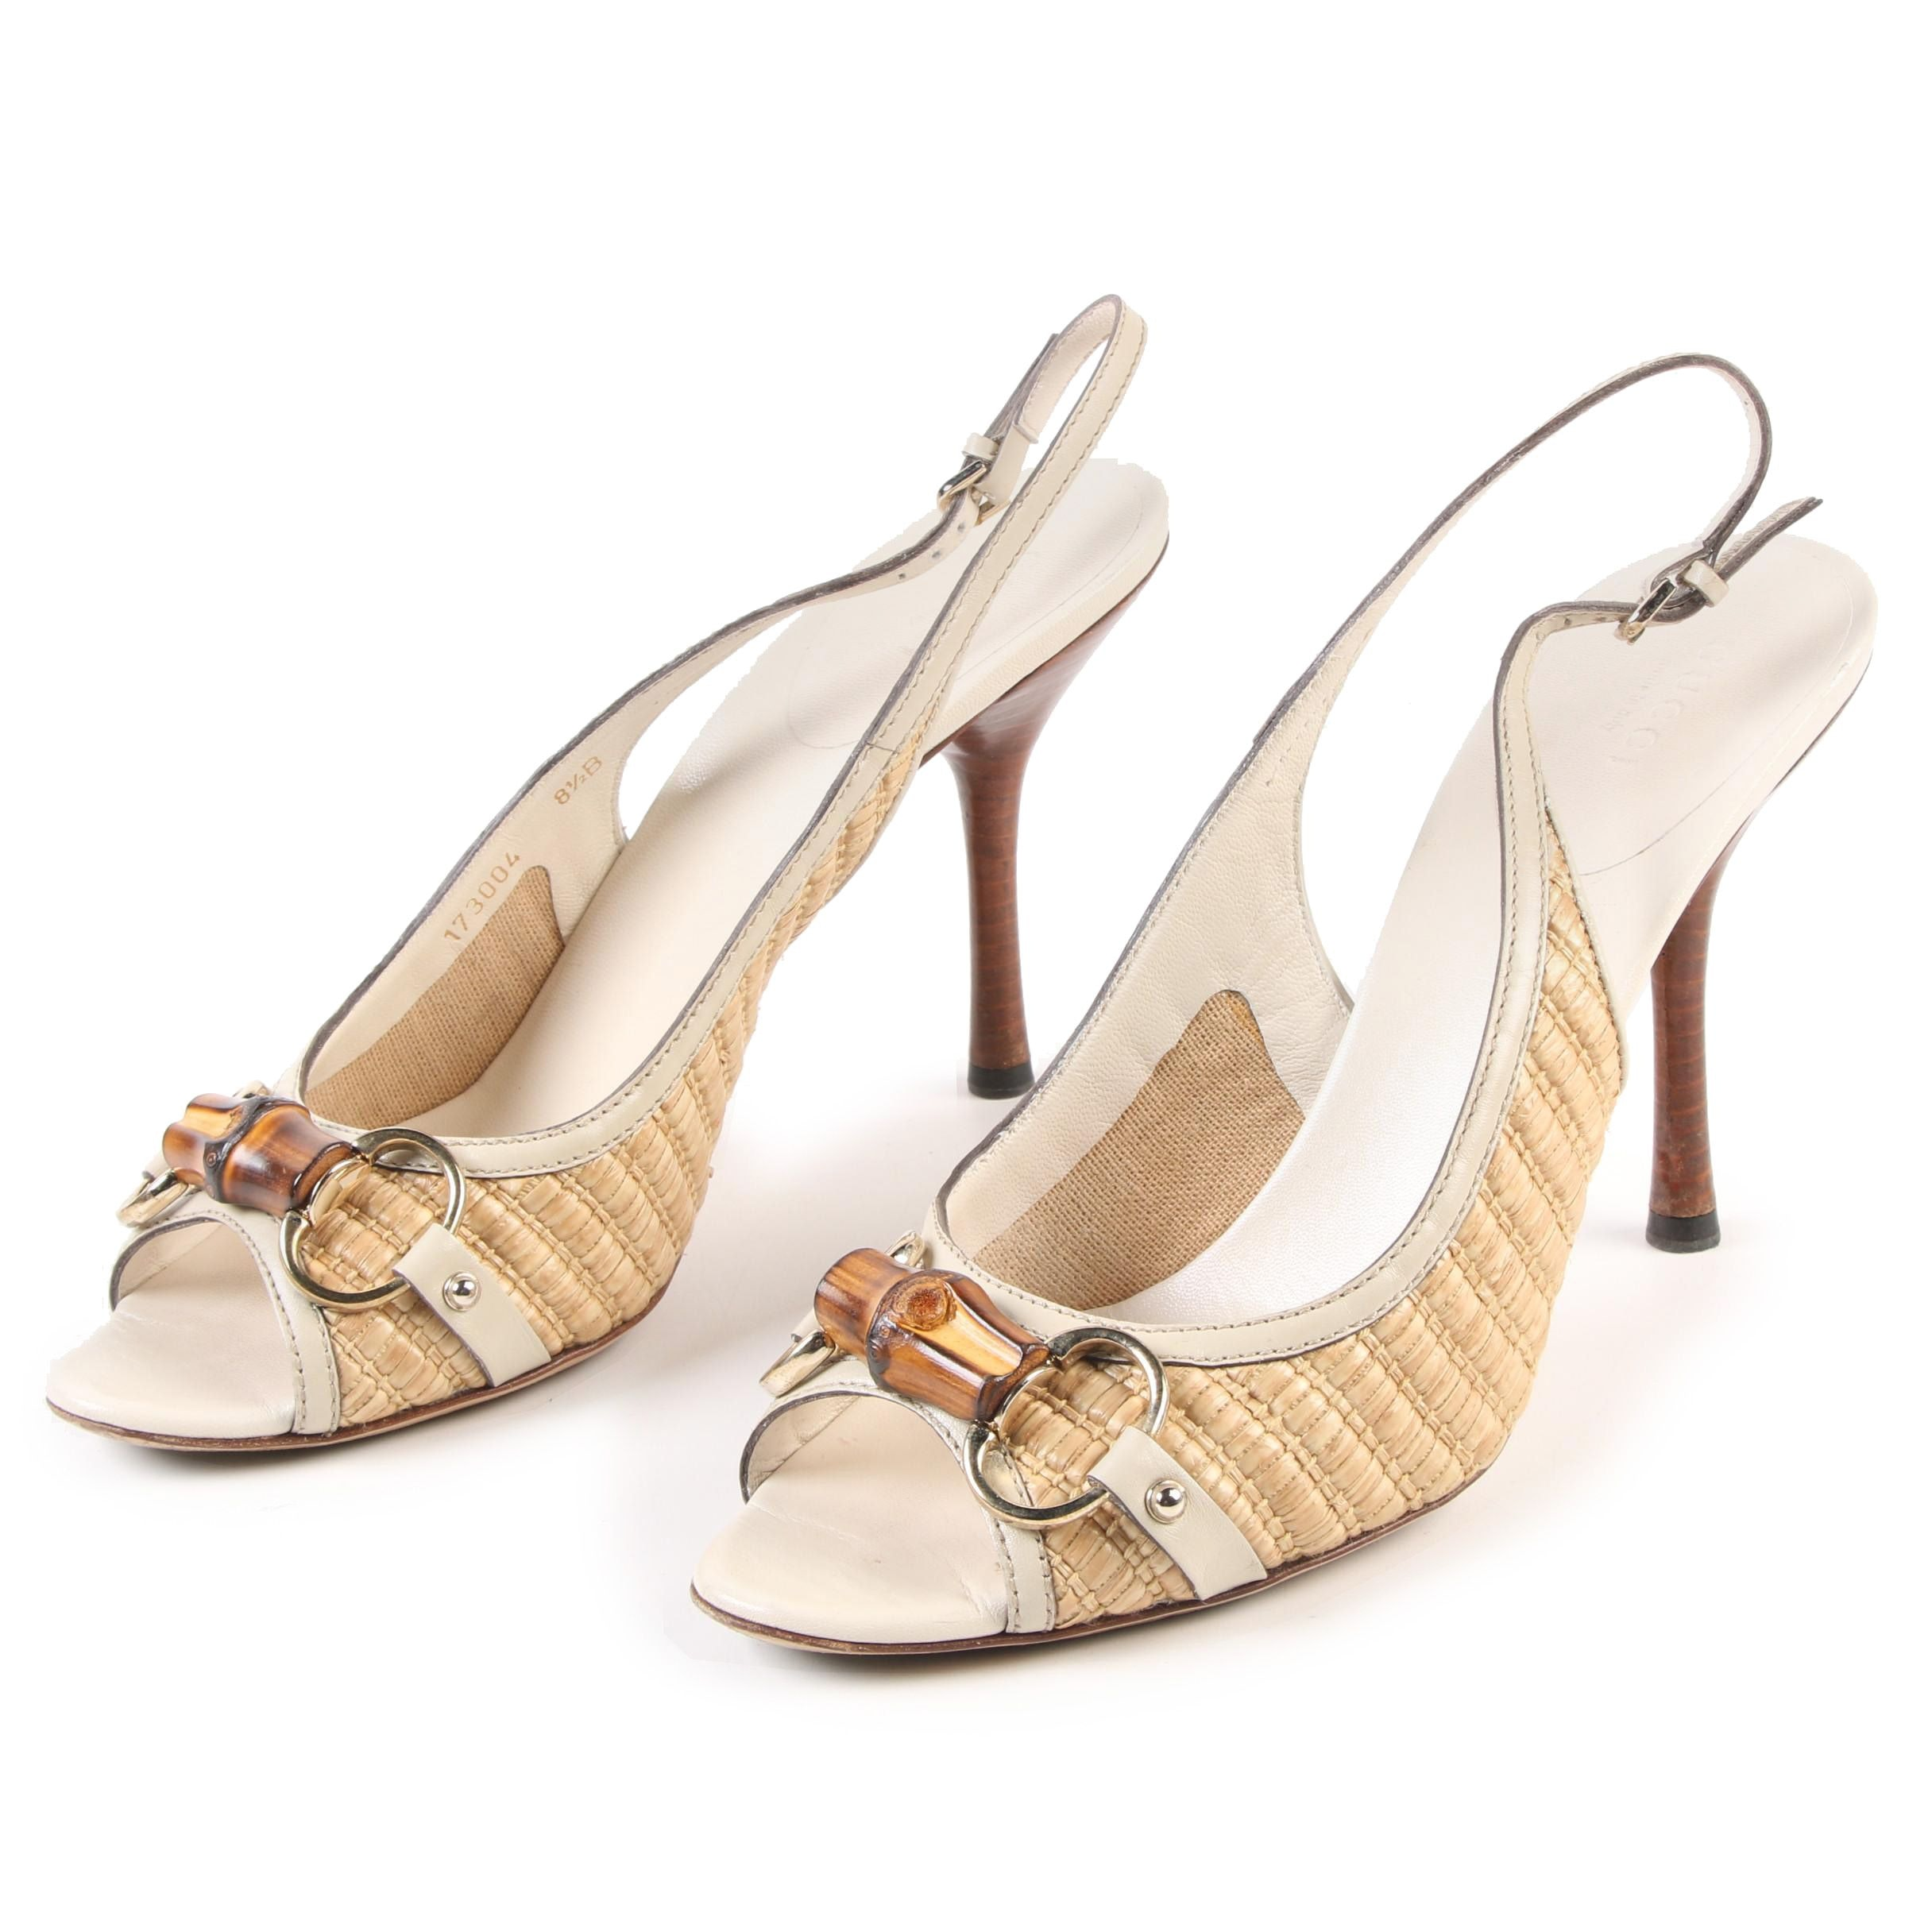 Gucci Bamboo Horsebit High Heel Slingback Sandals in Natural Straw and Leather